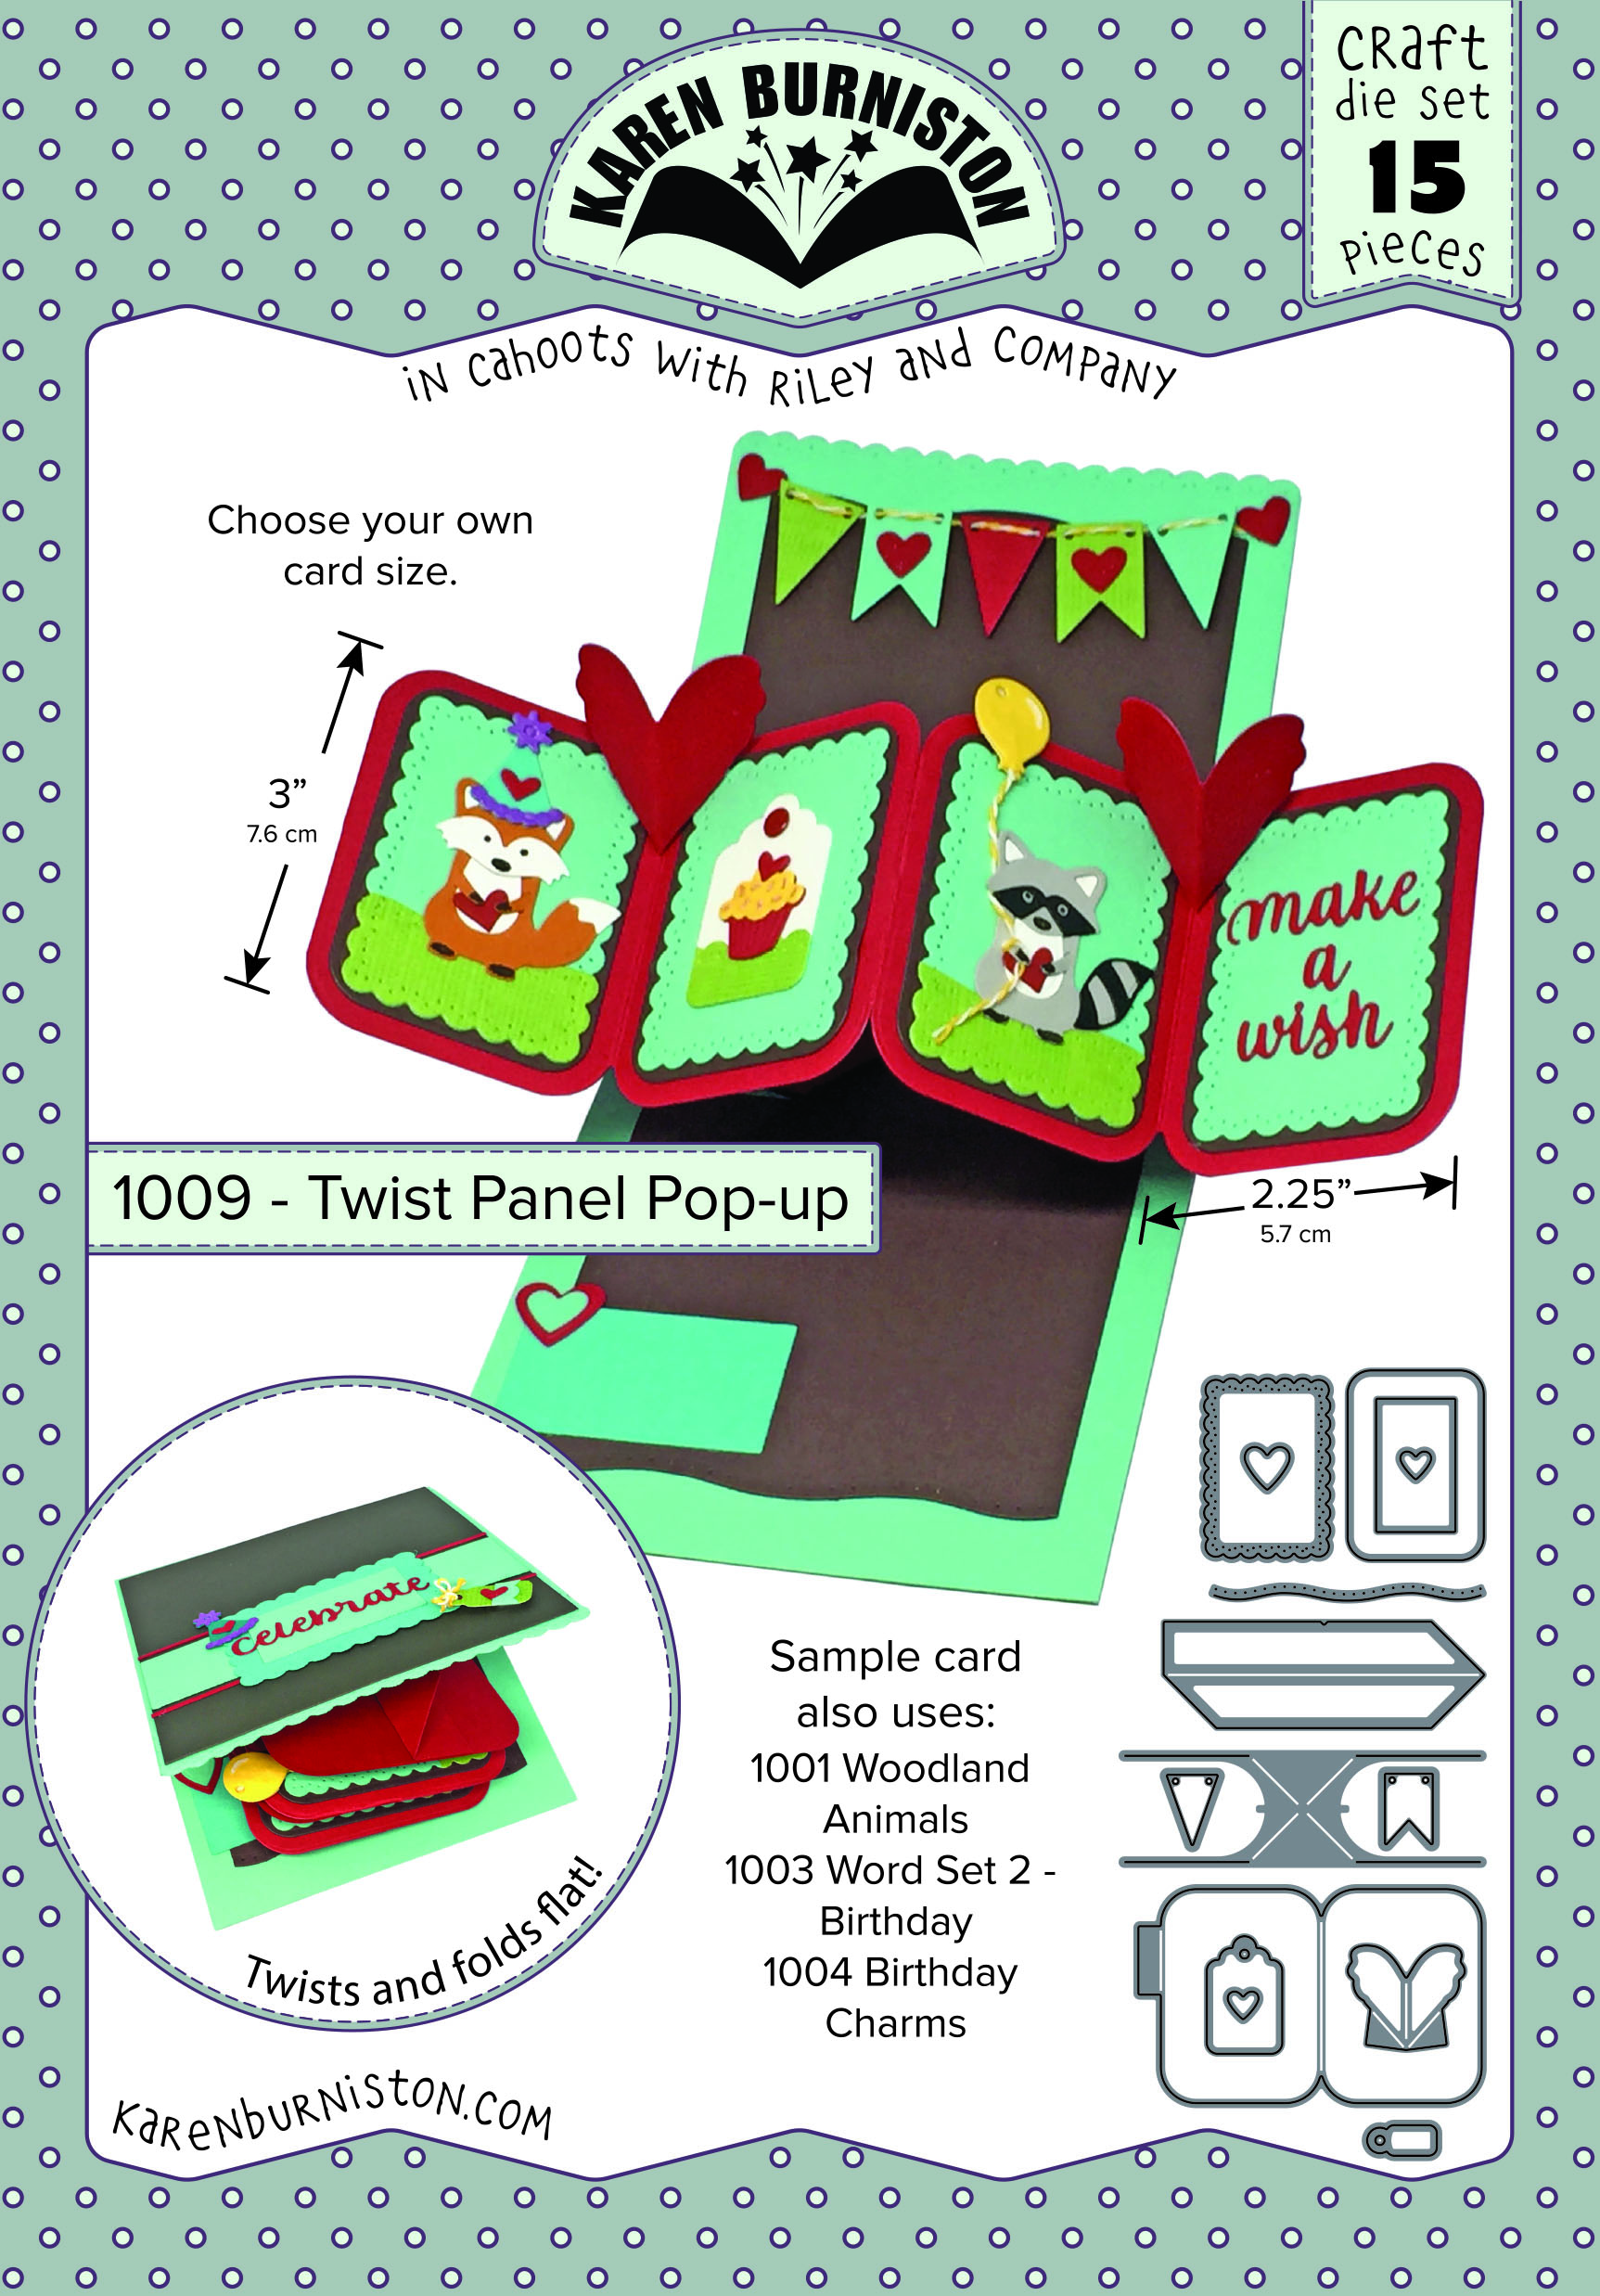 1009-twistpanelpopup.jpg